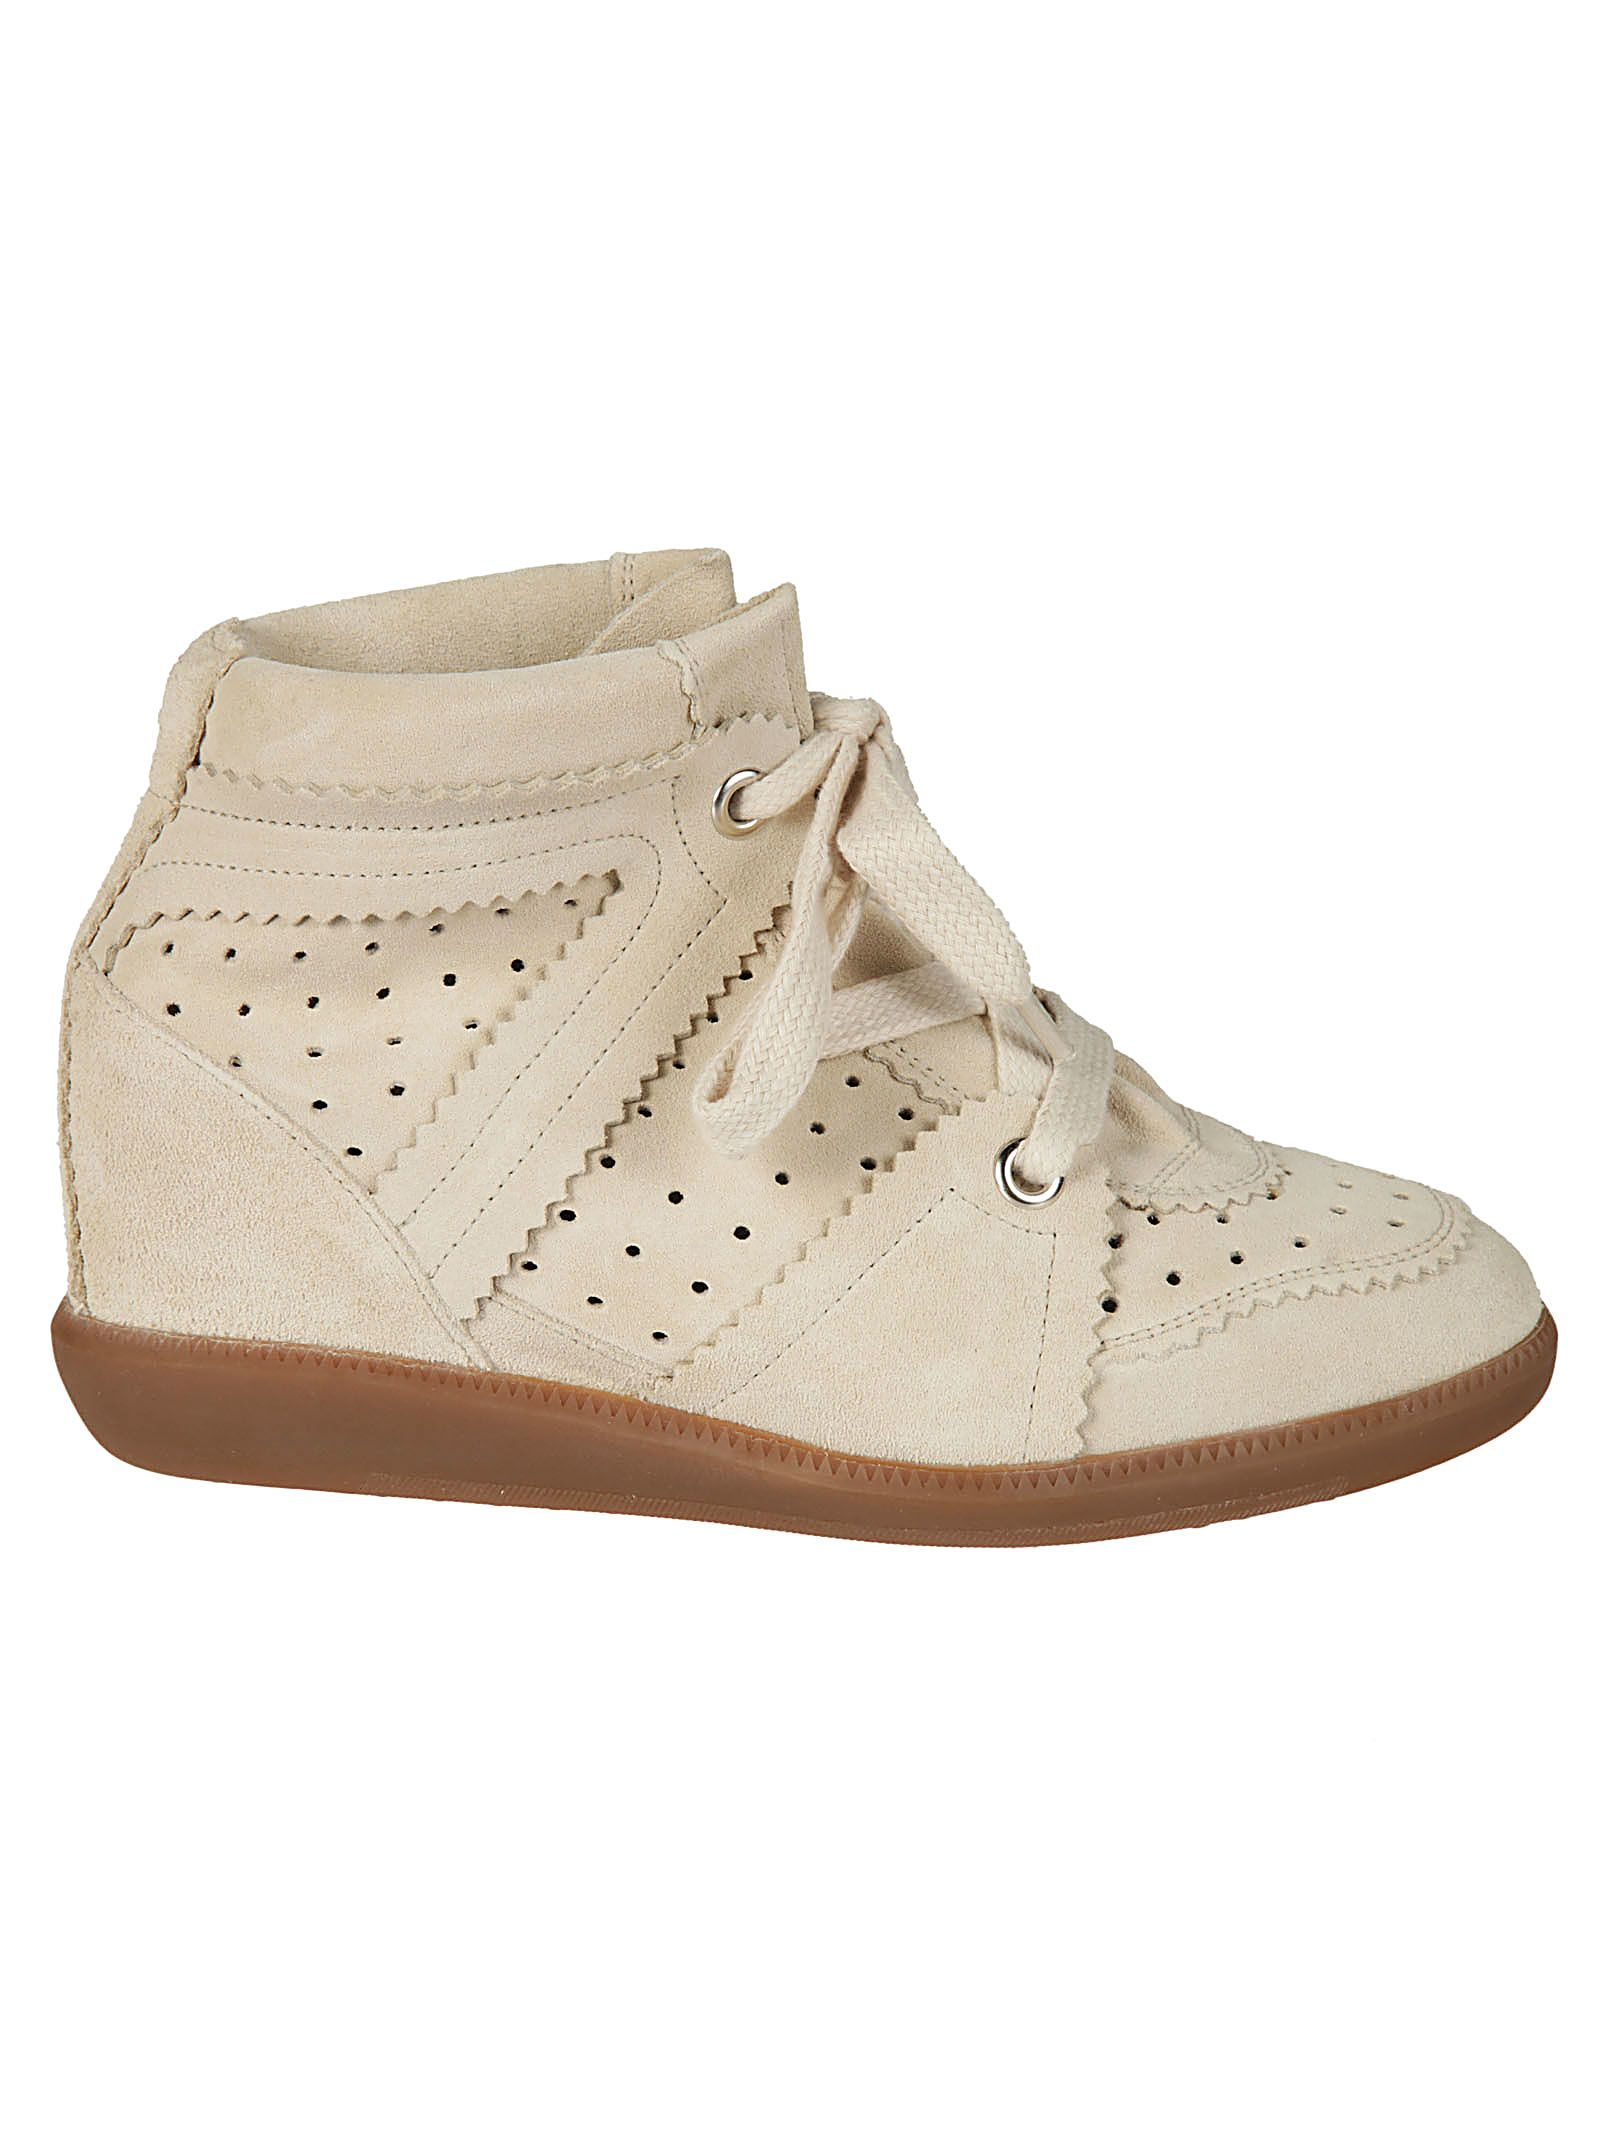 Isabel Marant Body Wedge Sneakers